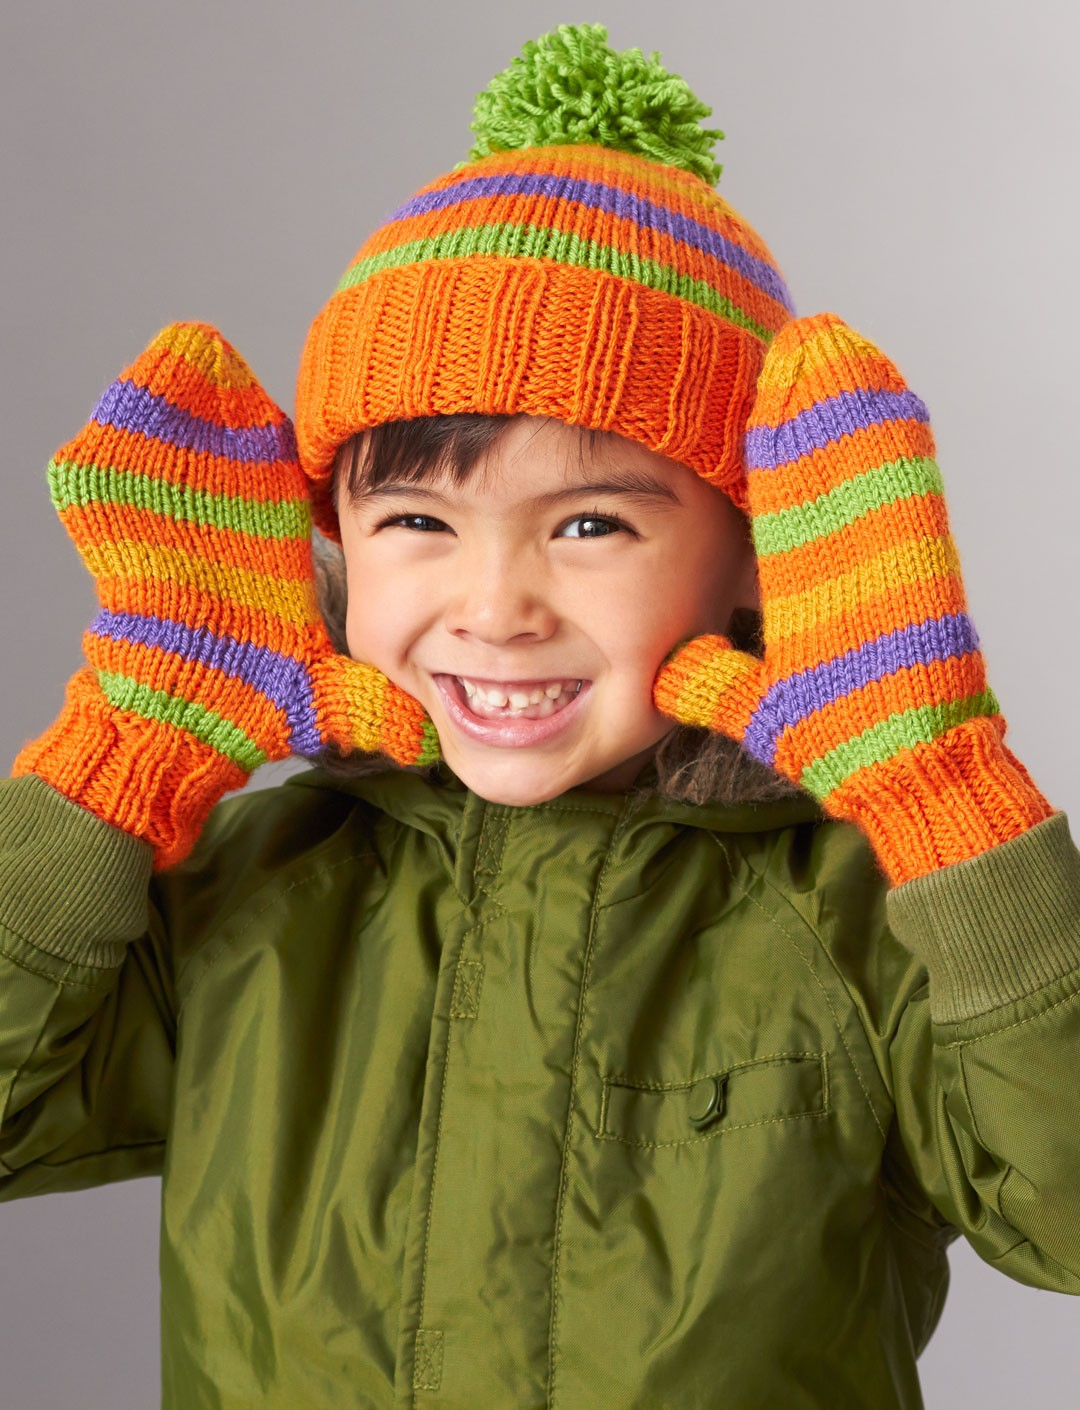 Free Knitting Patterns For Mittens In The Round : Patons Striped Basic Hat and Mittens 4 Needles, Knit Pattern Yarnspirations